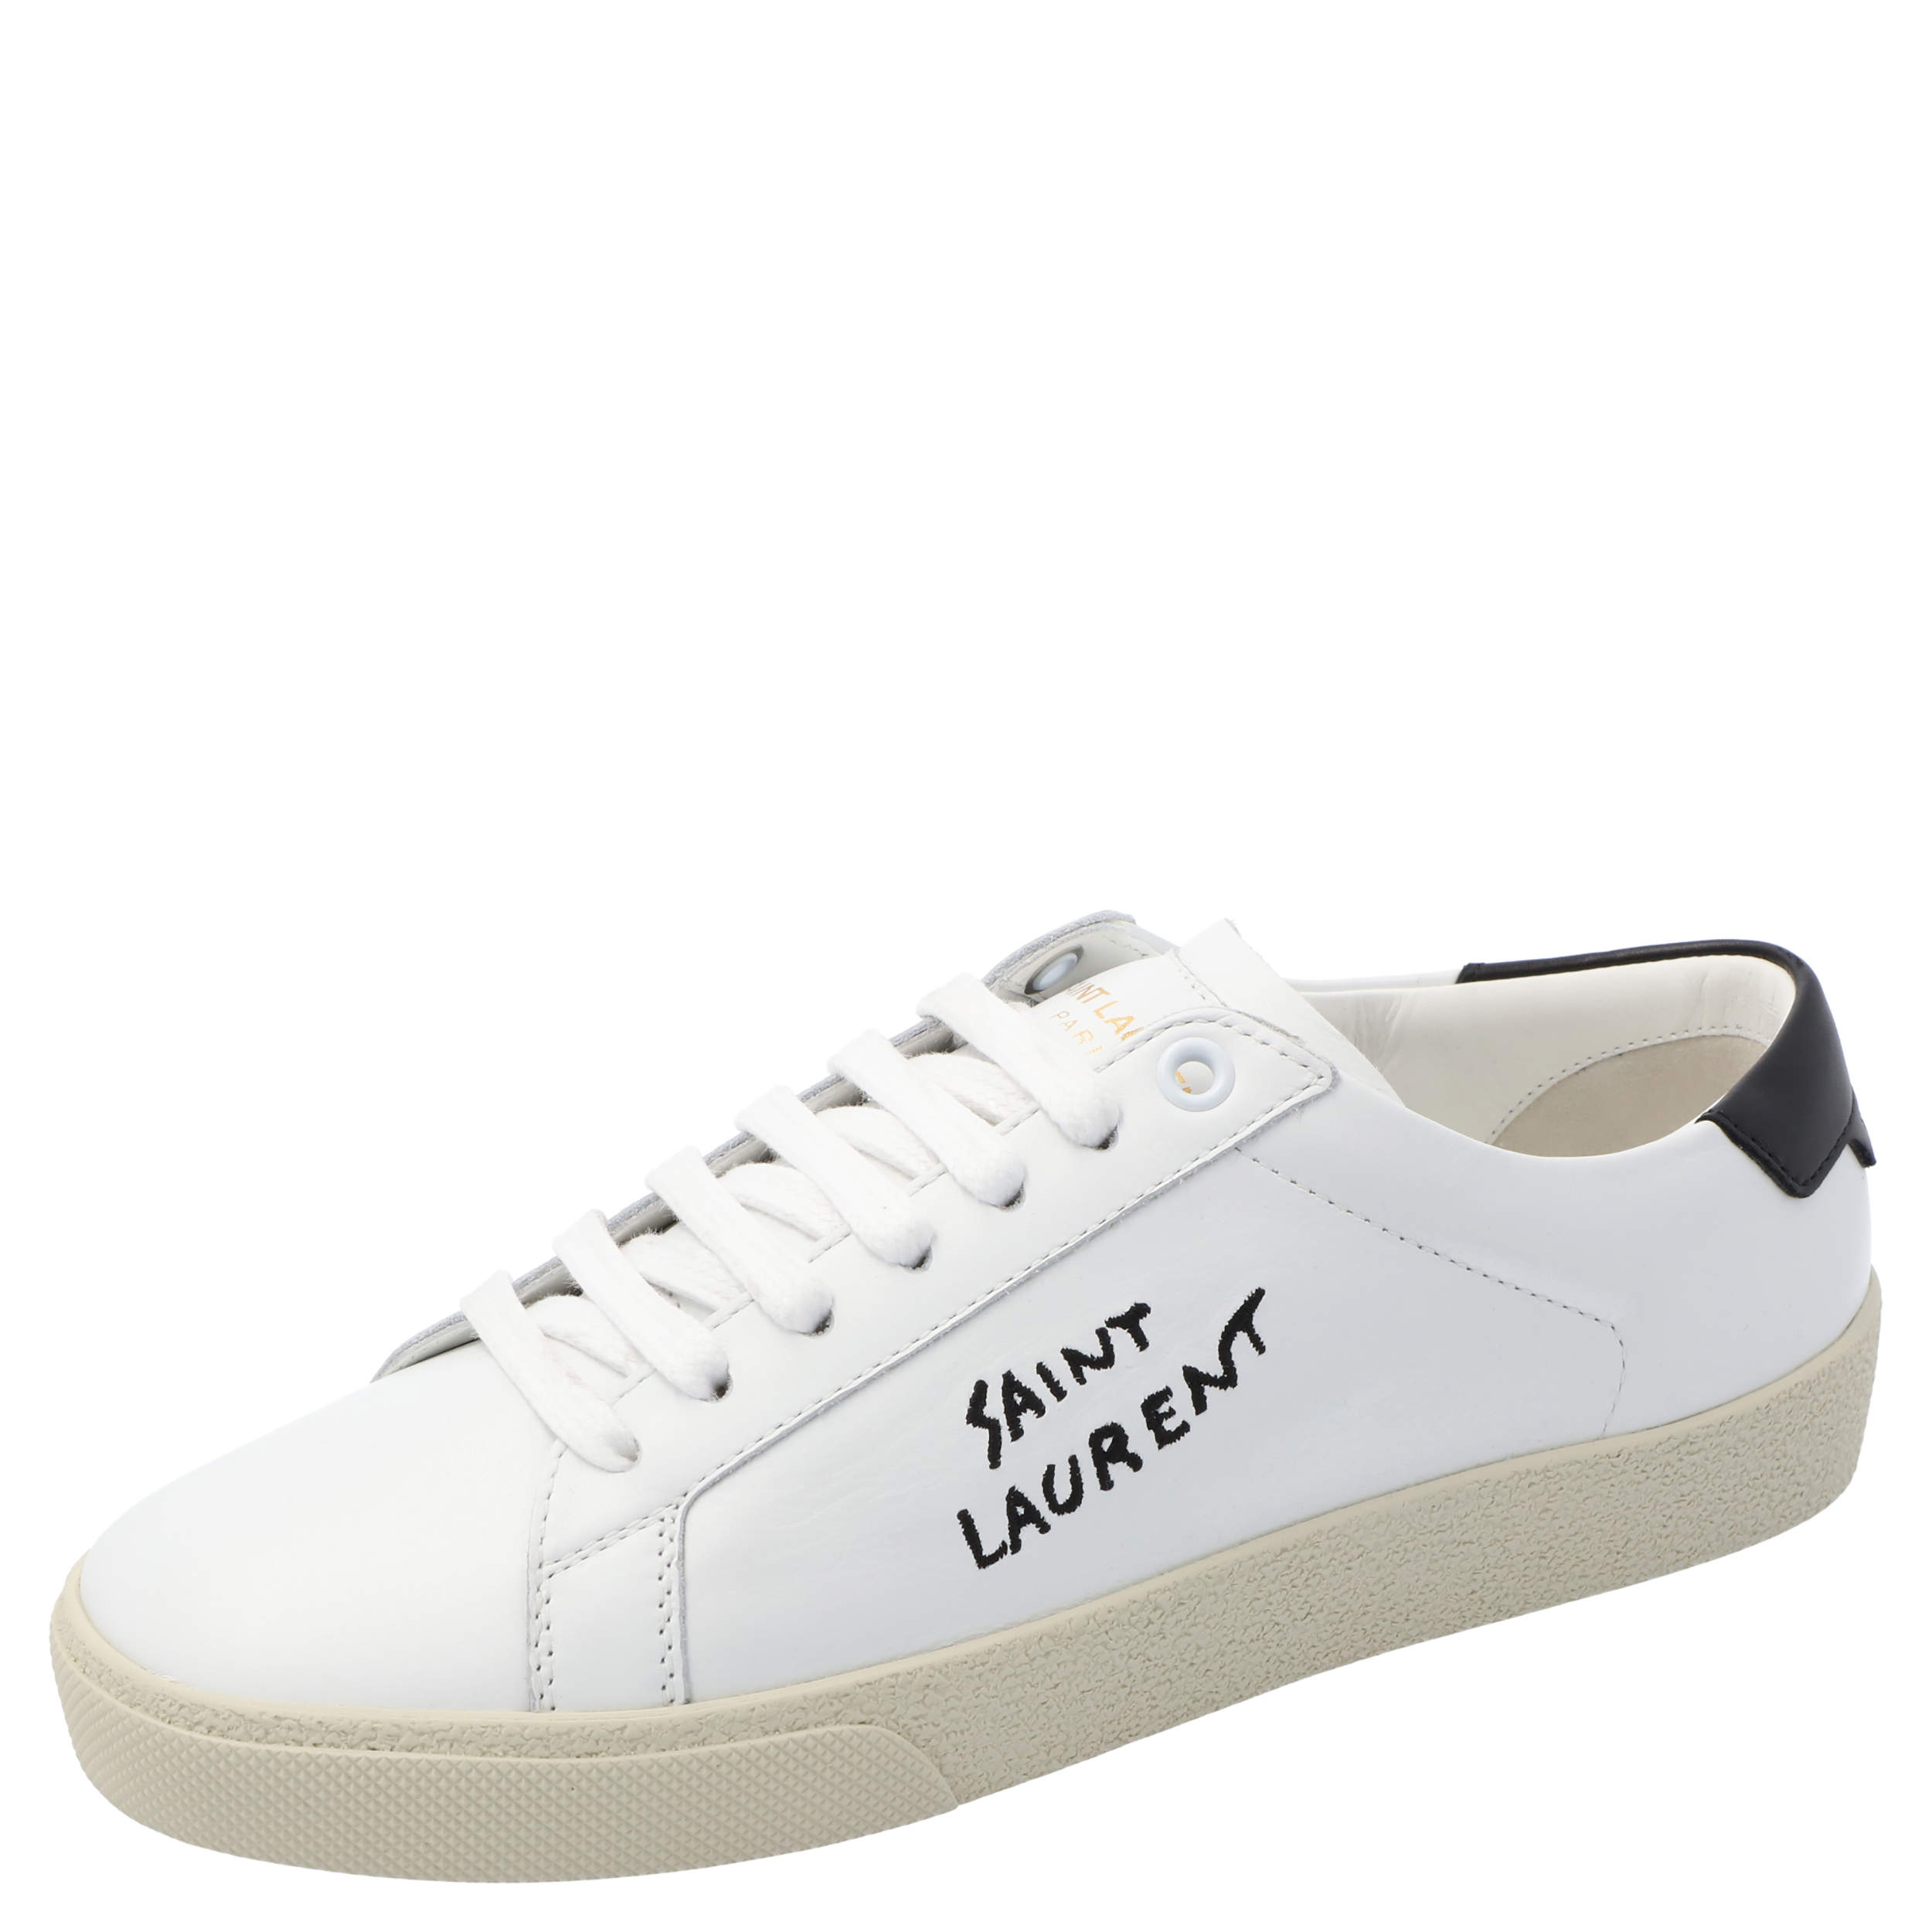 Saint Laurent White Leather SL/06 Embroidered Court Classic Sneakers Size EU 37